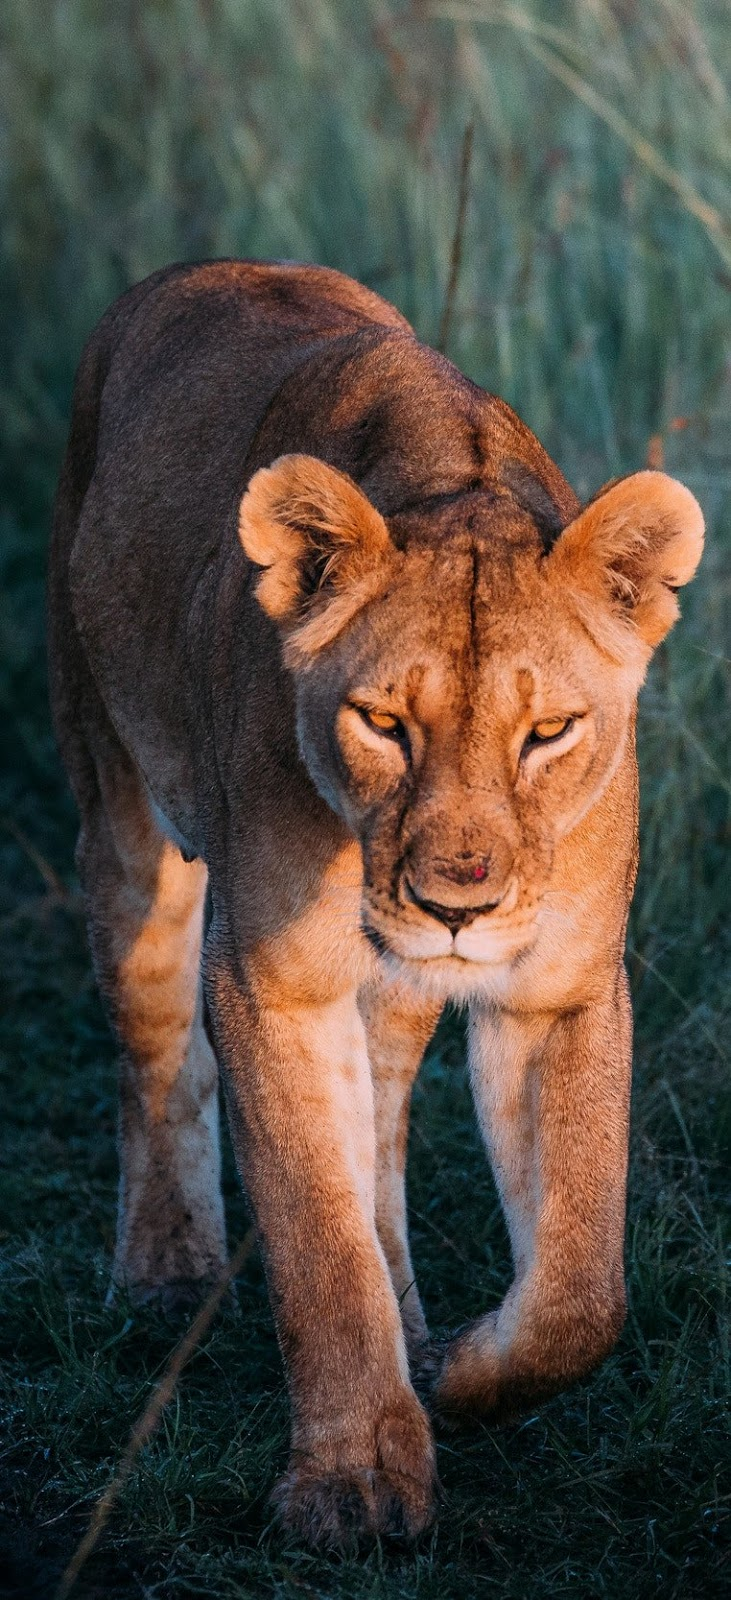 A lioness on patrol.